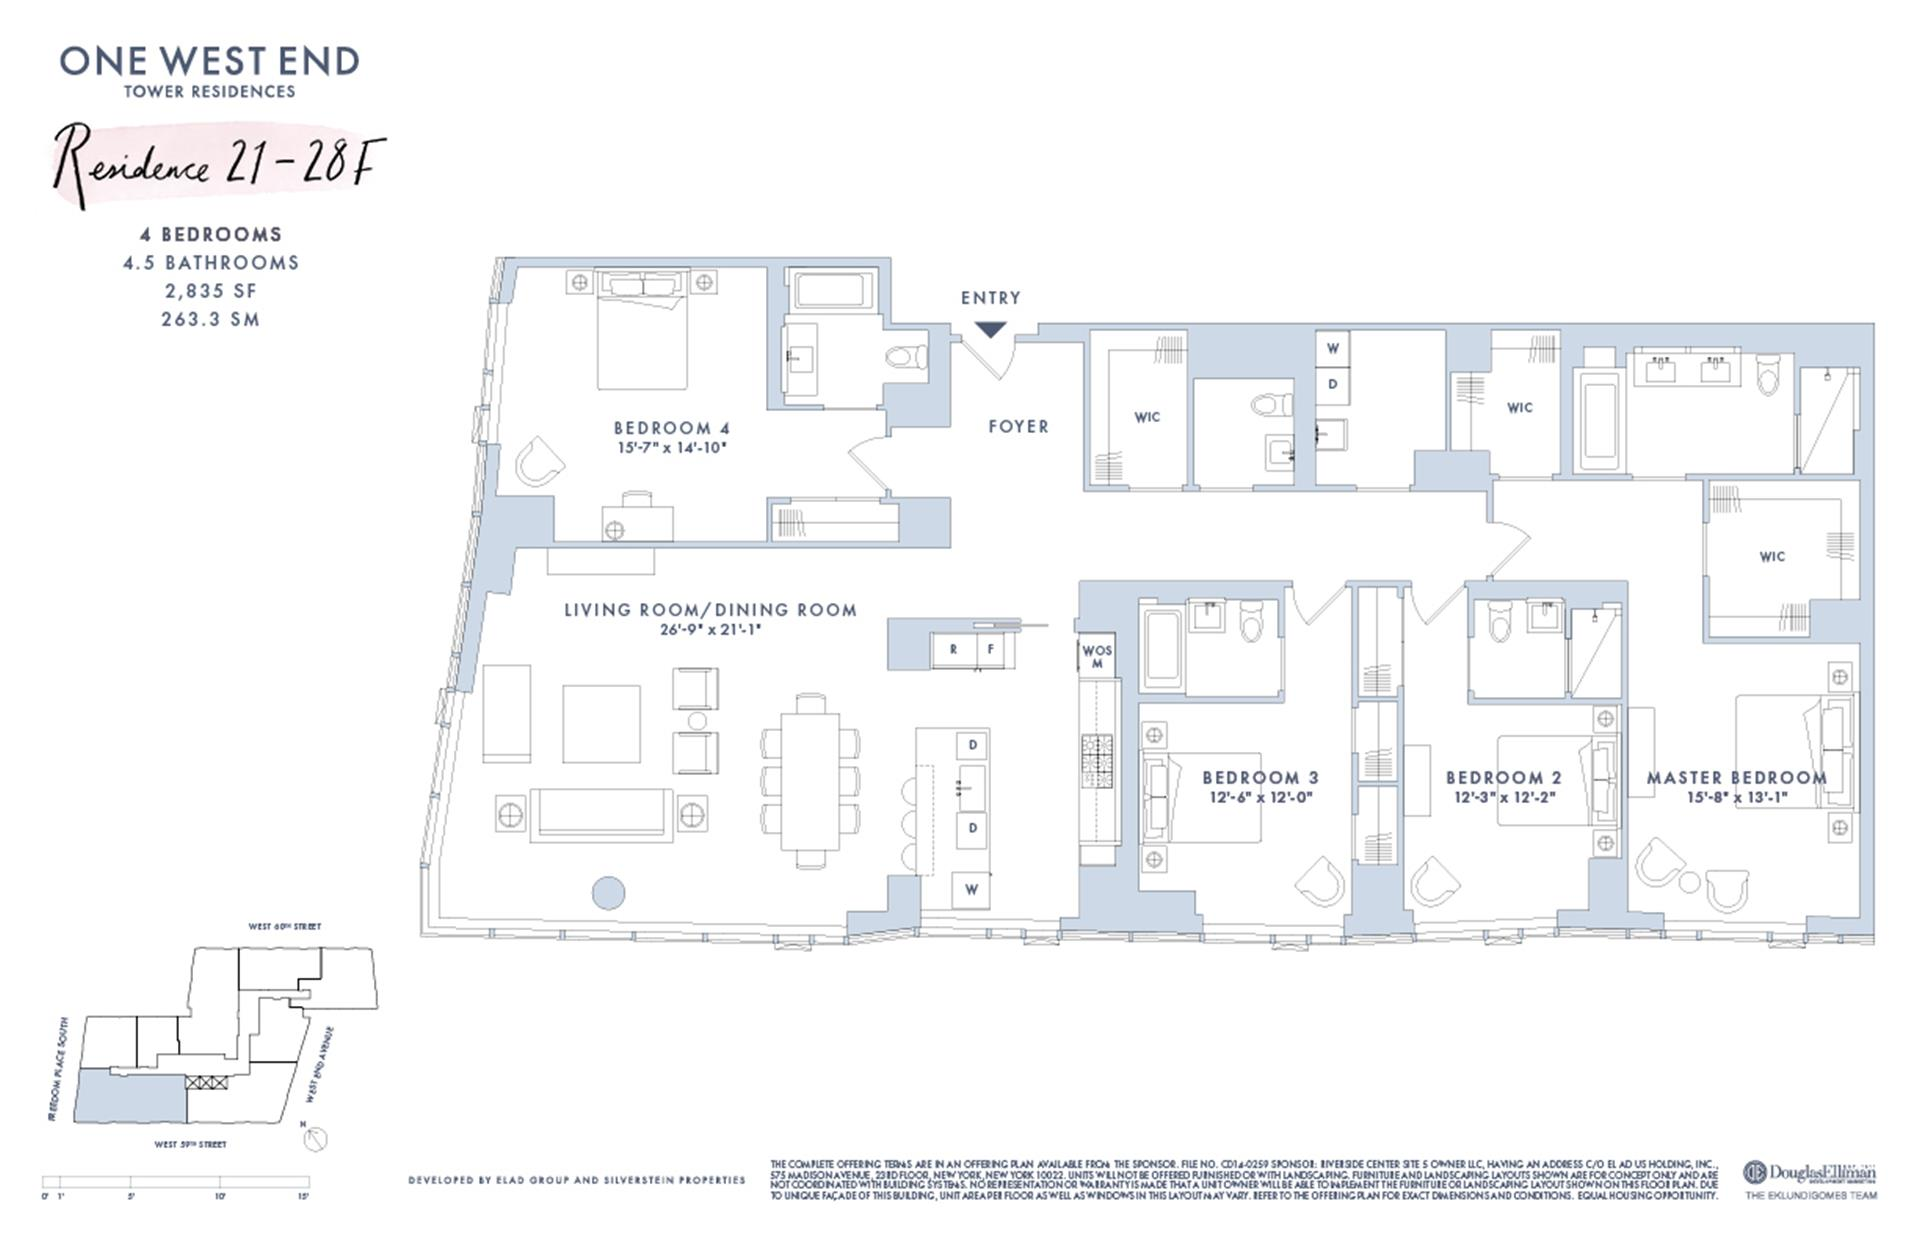 Floor plan of One West End, 1 West End Avenue, 25F - Upper West Side, New York